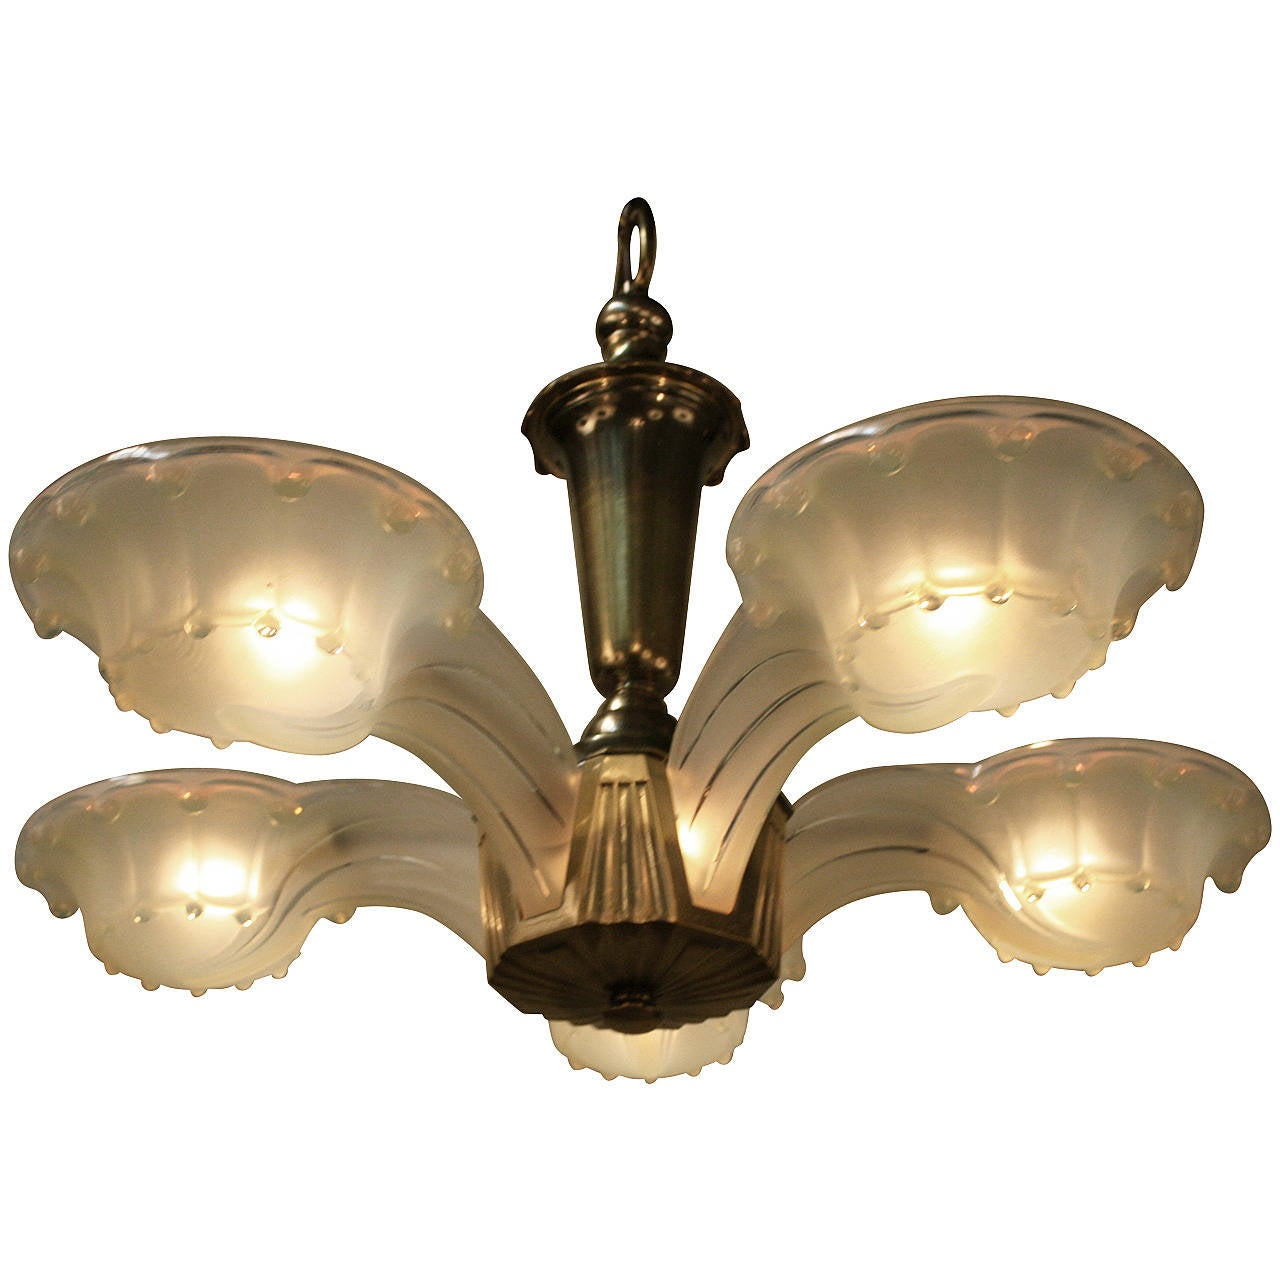 Unique French Art Deco Chandelier At 1stdibs